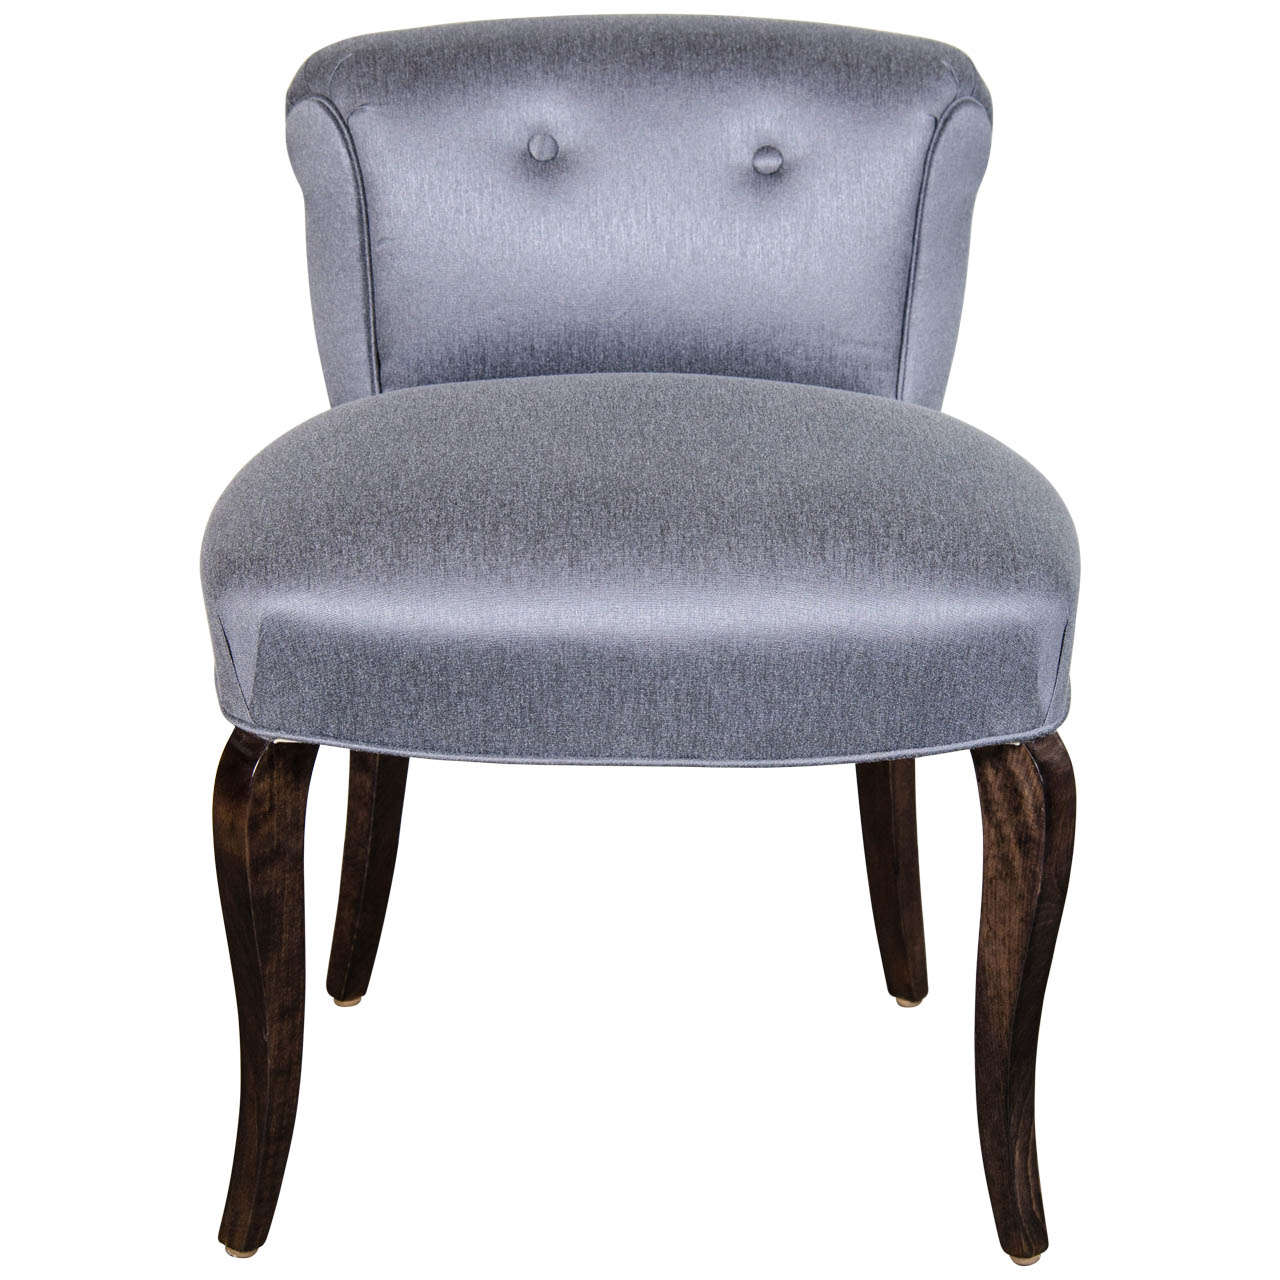 1940 39 s hollywood scroll back vanity chair stool with cabriole legs at 1stdibs - Tall vanity chair ...